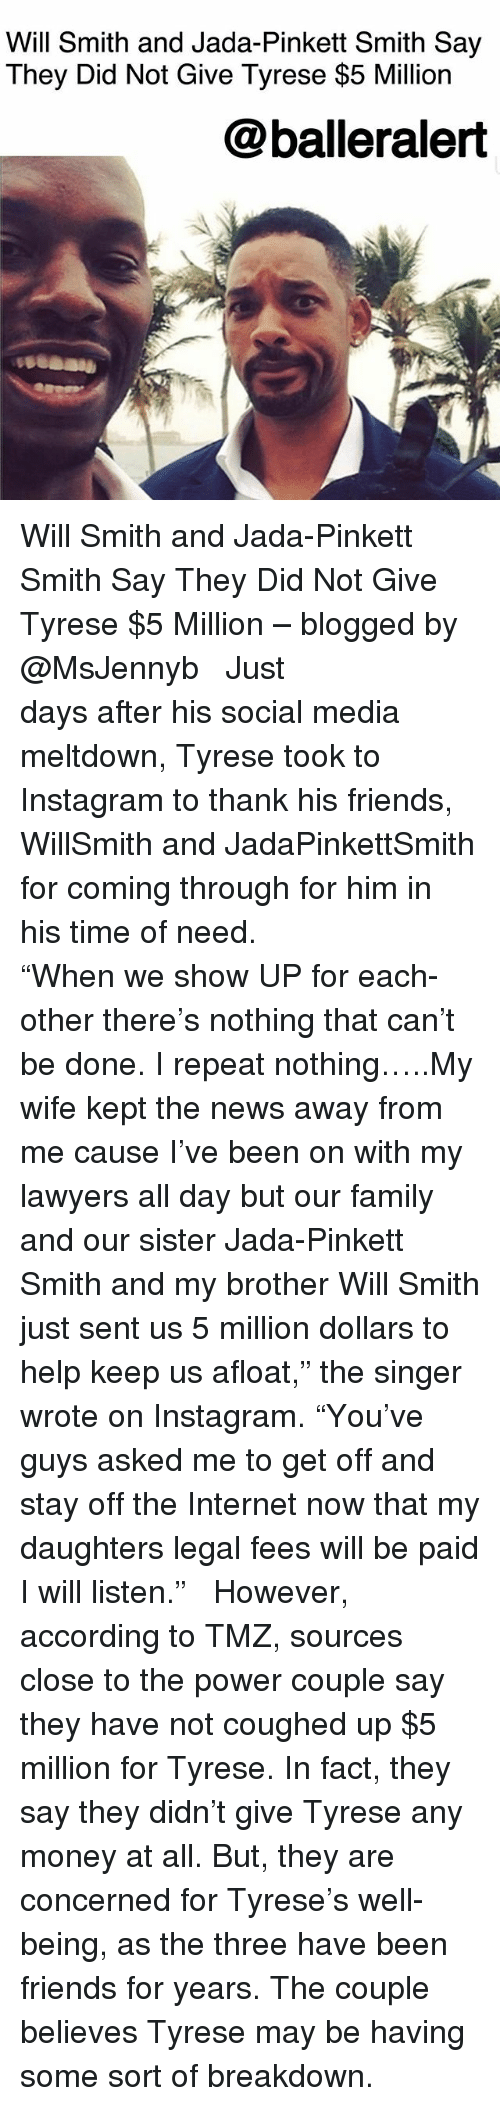 """coming-through: Will Smith and Jada-Pinkett Smith Say  They Did Not Give Tyrese $5 Million  @balleralert Will Smith and Jada-Pinkett Smith Say They Did Not Give Tyrese $5 Million – blogged by @MsJennyb ⠀⠀⠀⠀⠀⠀⠀ ⠀⠀⠀⠀⠀⠀⠀ Just days after his social media meltdown, Tyrese took to Instagram to thank his friends, WillSmith and JadaPinkettSmith for coming through for him in his time of need. ⠀⠀⠀⠀⠀⠀⠀⠀⠀⠀⠀⠀⠀⠀ ⠀⠀⠀⠀⠀⠀⠀ """"When we show UP for each-other there's nothing that can't be done. I repeat nothing…..My wife kept the news away from me cause I've been on with my lawyers all day but our family and our sister Jada-Pinkett Smith and my brother Will Smith just sent us 5 million dollars to help keep us afloat,"""" the singer wrote on Instagram. """"You've guys asked me to get off and stay off the Internet now that my daughters legal fees will be paid I will listen."""" ⠀⠀⠀⠀⠀⠀⠀ ⠀⠀⠀⠀⠀⠀⠀ However, according to TMZ, sources close to the power couple say they have not coughed up $5 million for Tyrese. In fact, they say they didn't give Tyrese any money at all. But, they are concerned for Tyrese's well-being, as the three have been friends for years. The couple believes Tyrese may be having some sort of breakdown."""